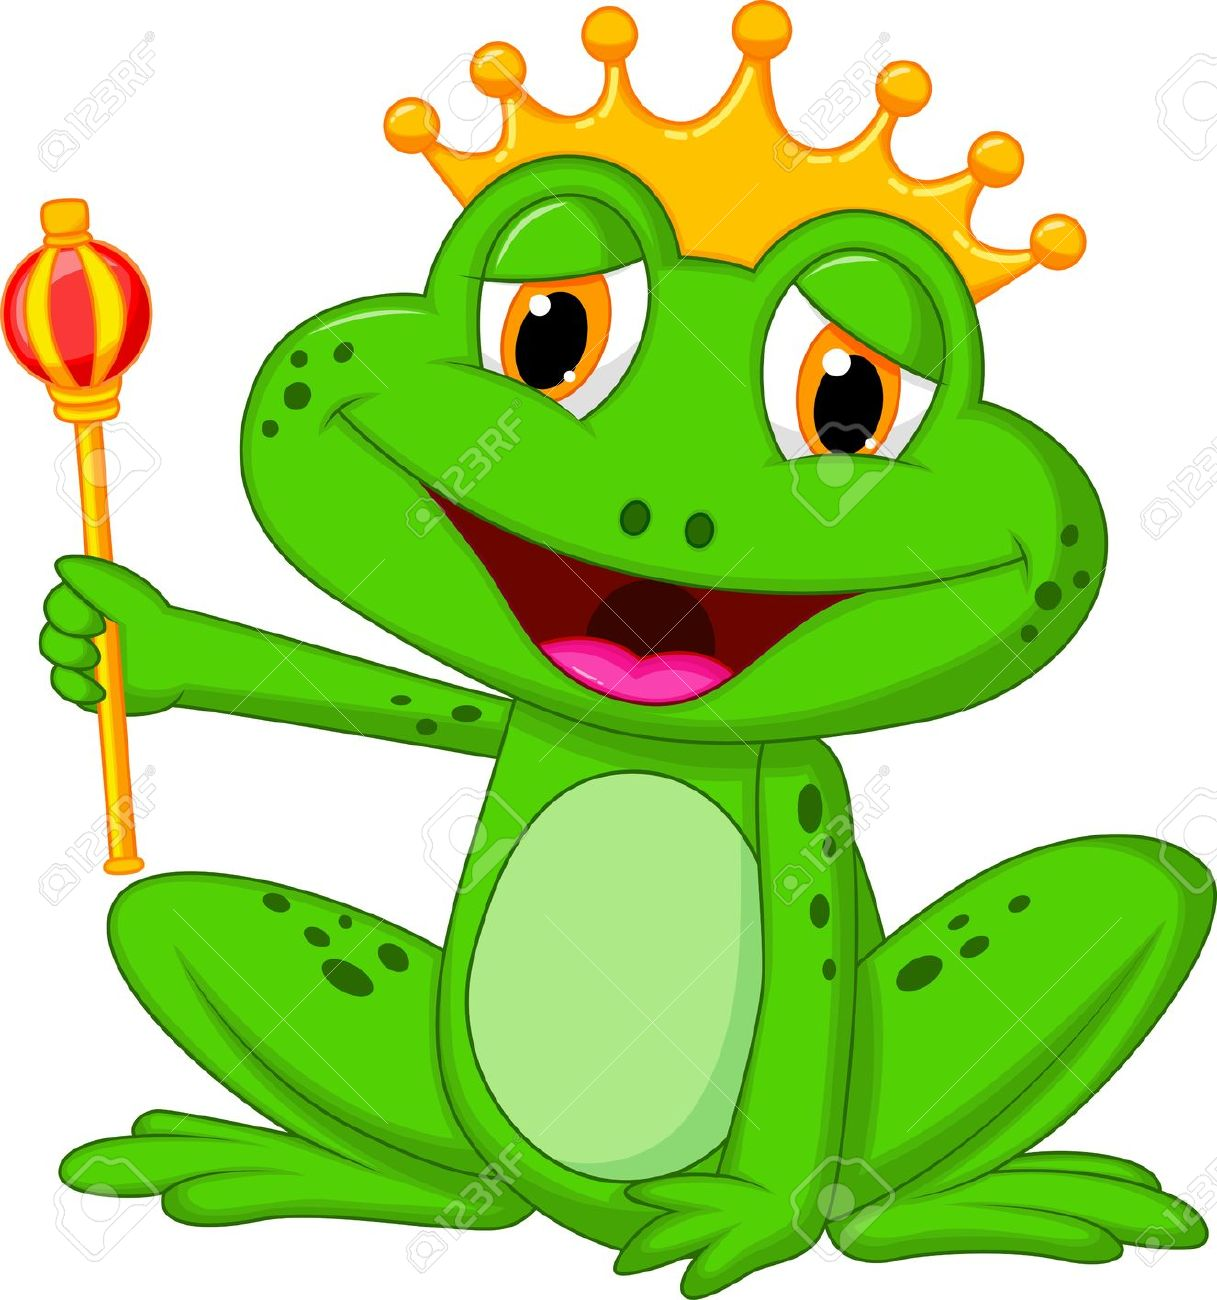 frog clipart for kids at getdrawings com free for personal use rh getdrawings com clip art frog life cycle clip art frogs free